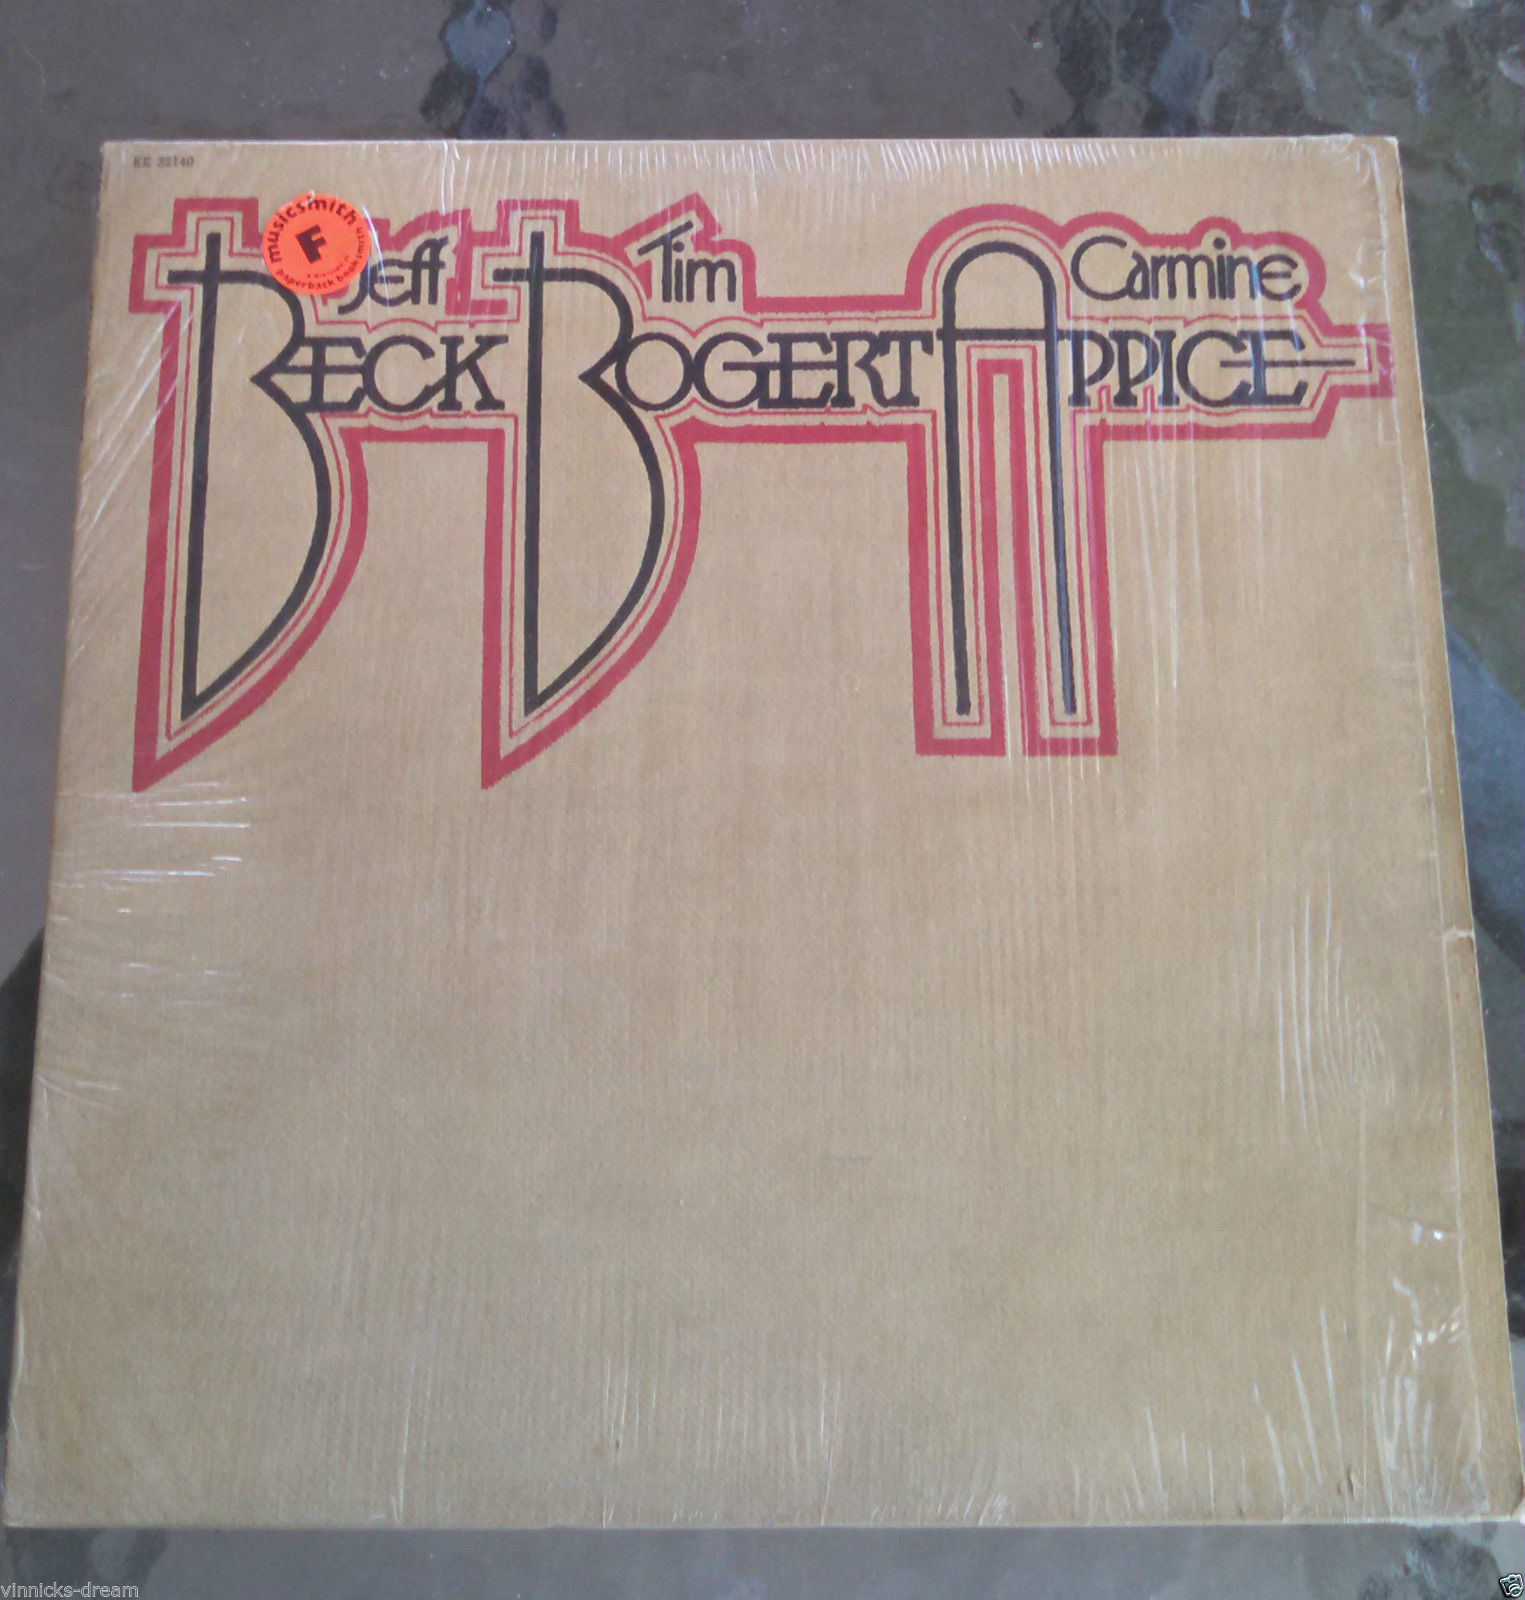 Rare 1973 Jeff Beck Tim Bogert Carmine Appice LP Record VG Shrink Black Cat Moan